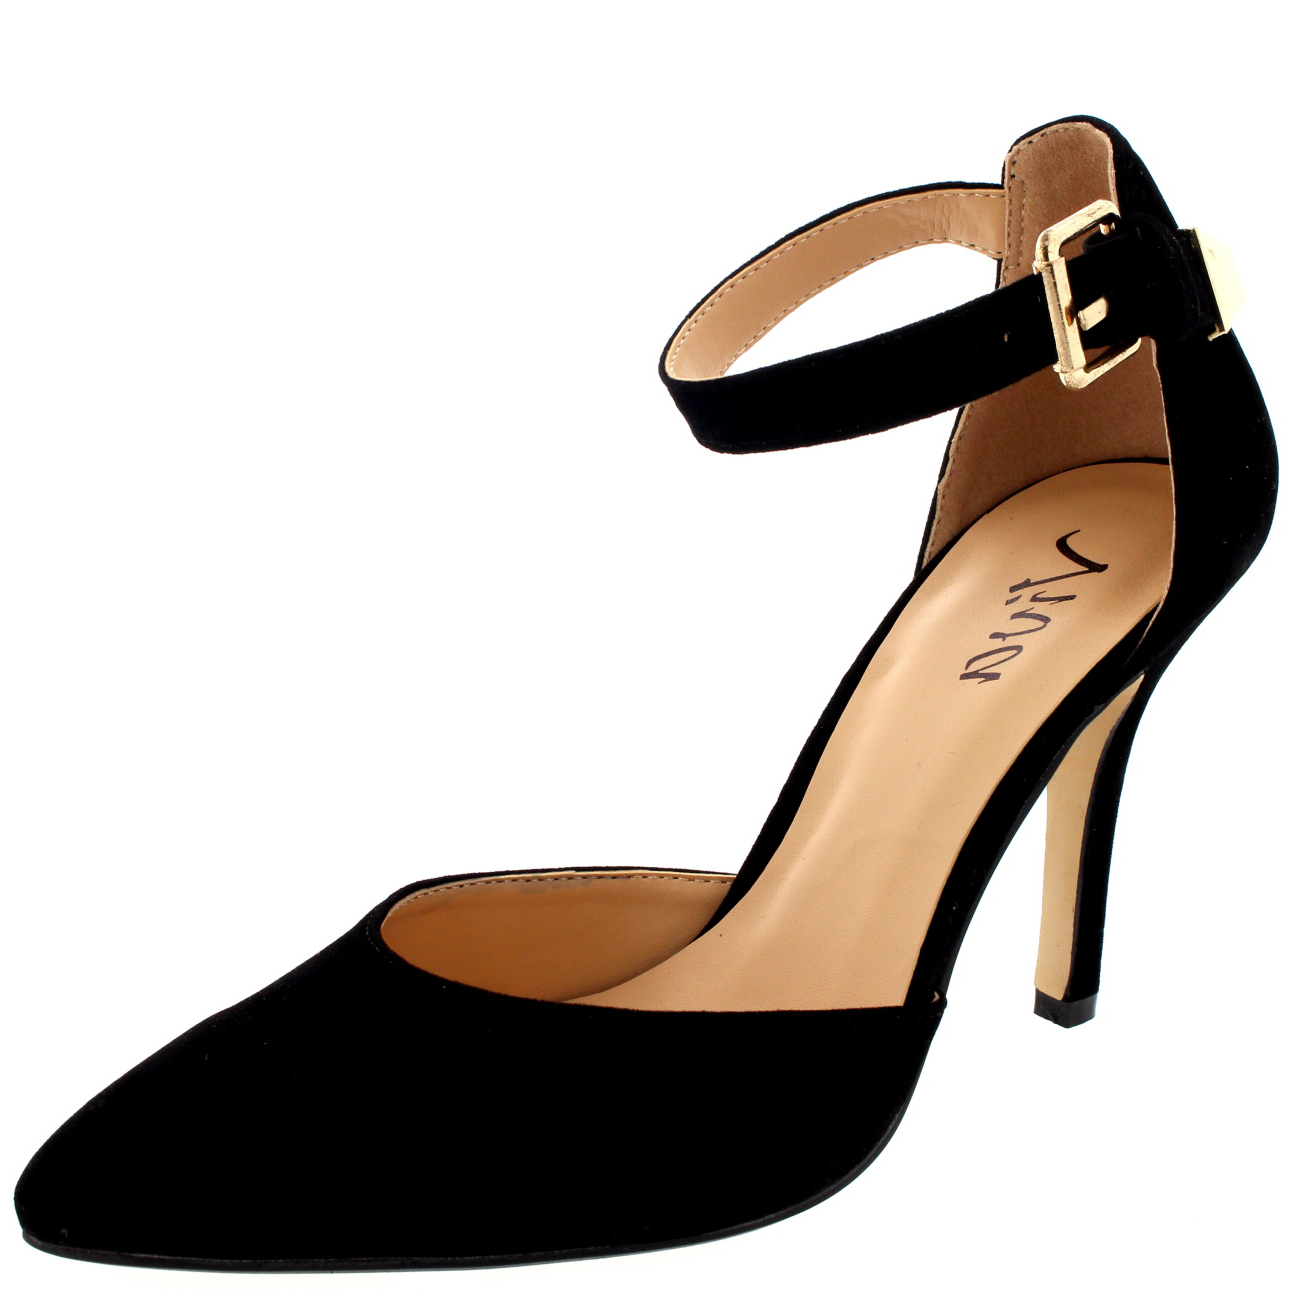 Ankle Strap Mid Heel Pumps